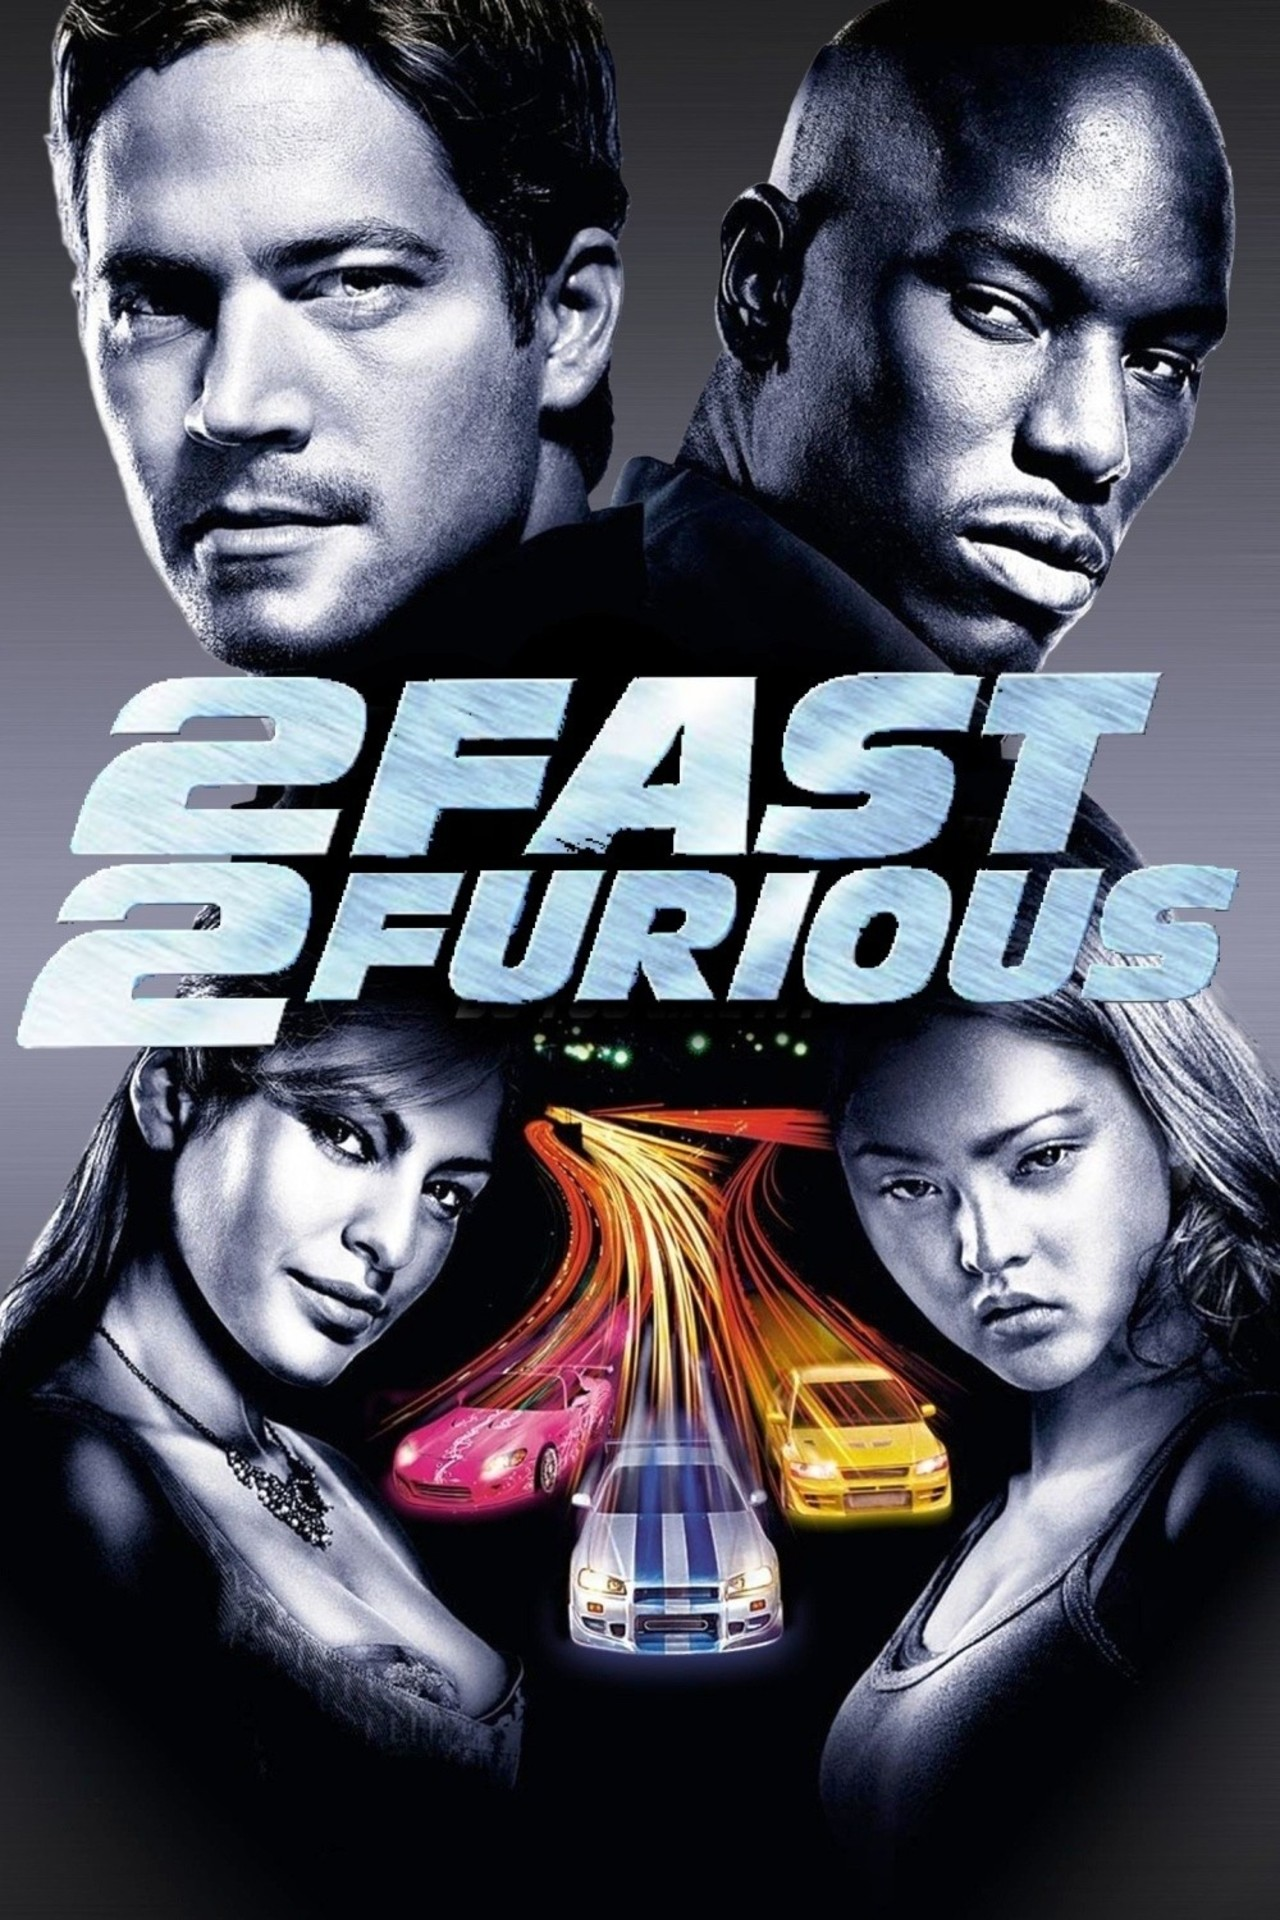 Poster for 2 Fast 2 Furious